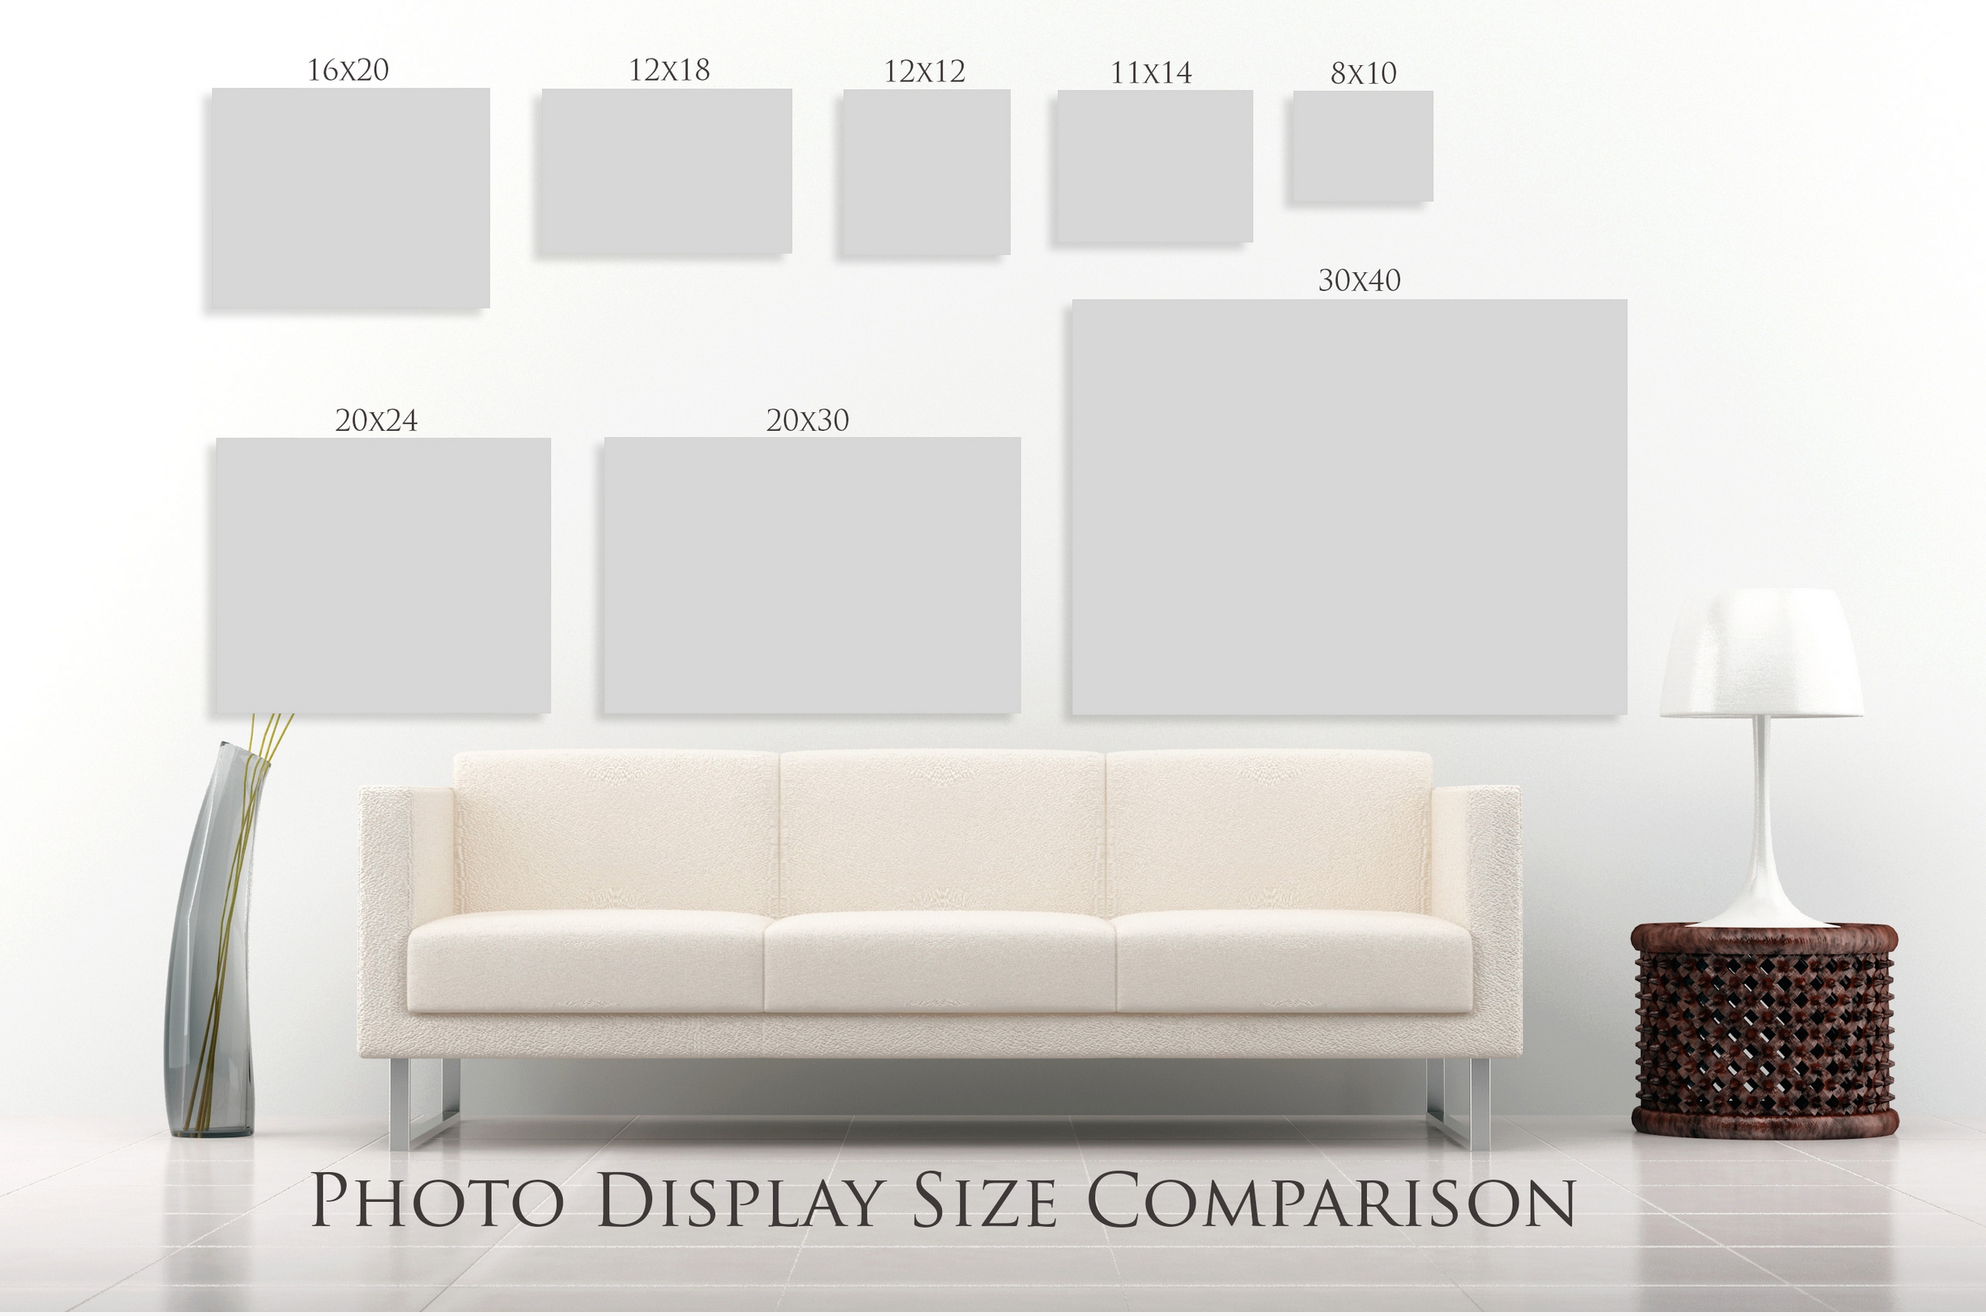 8x10? Everyone is familiar with the 8x10 photograph. And because everyone is familiar with the 8x10, they want that size, even if it's not the best choice for their home/decor.  Did you know we help you choose the best size portrait for your home and your decor? Helping you choose the best size wall art is part of our Design Consultation Service at  Rebecca LaChance Artistic Portraits.